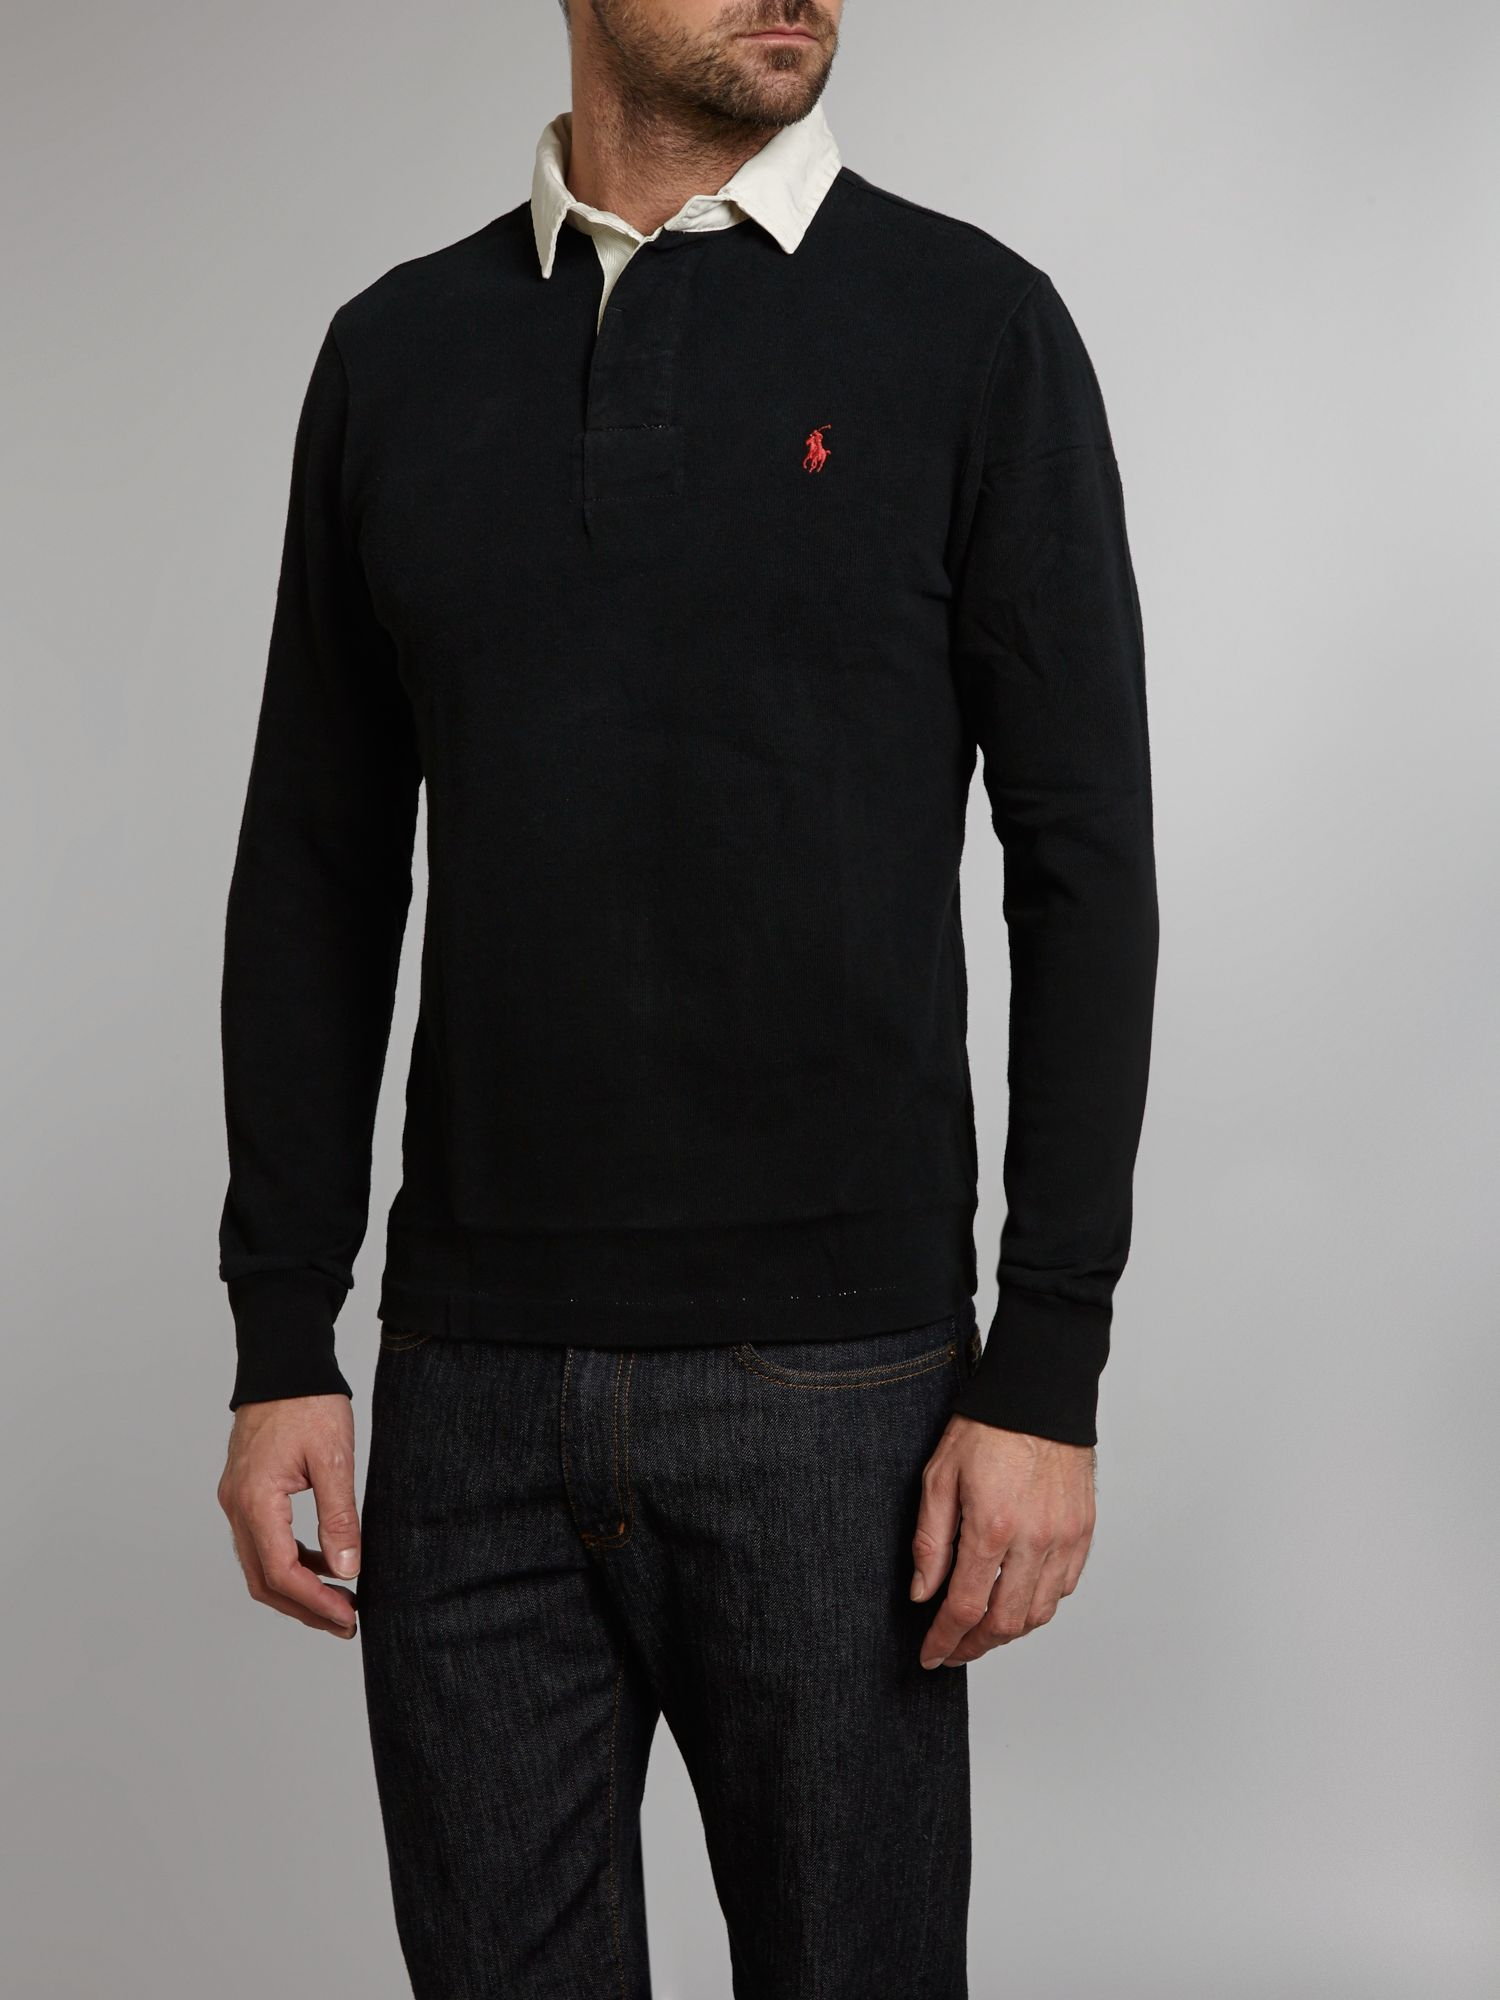 Vintage slim fit rugby top